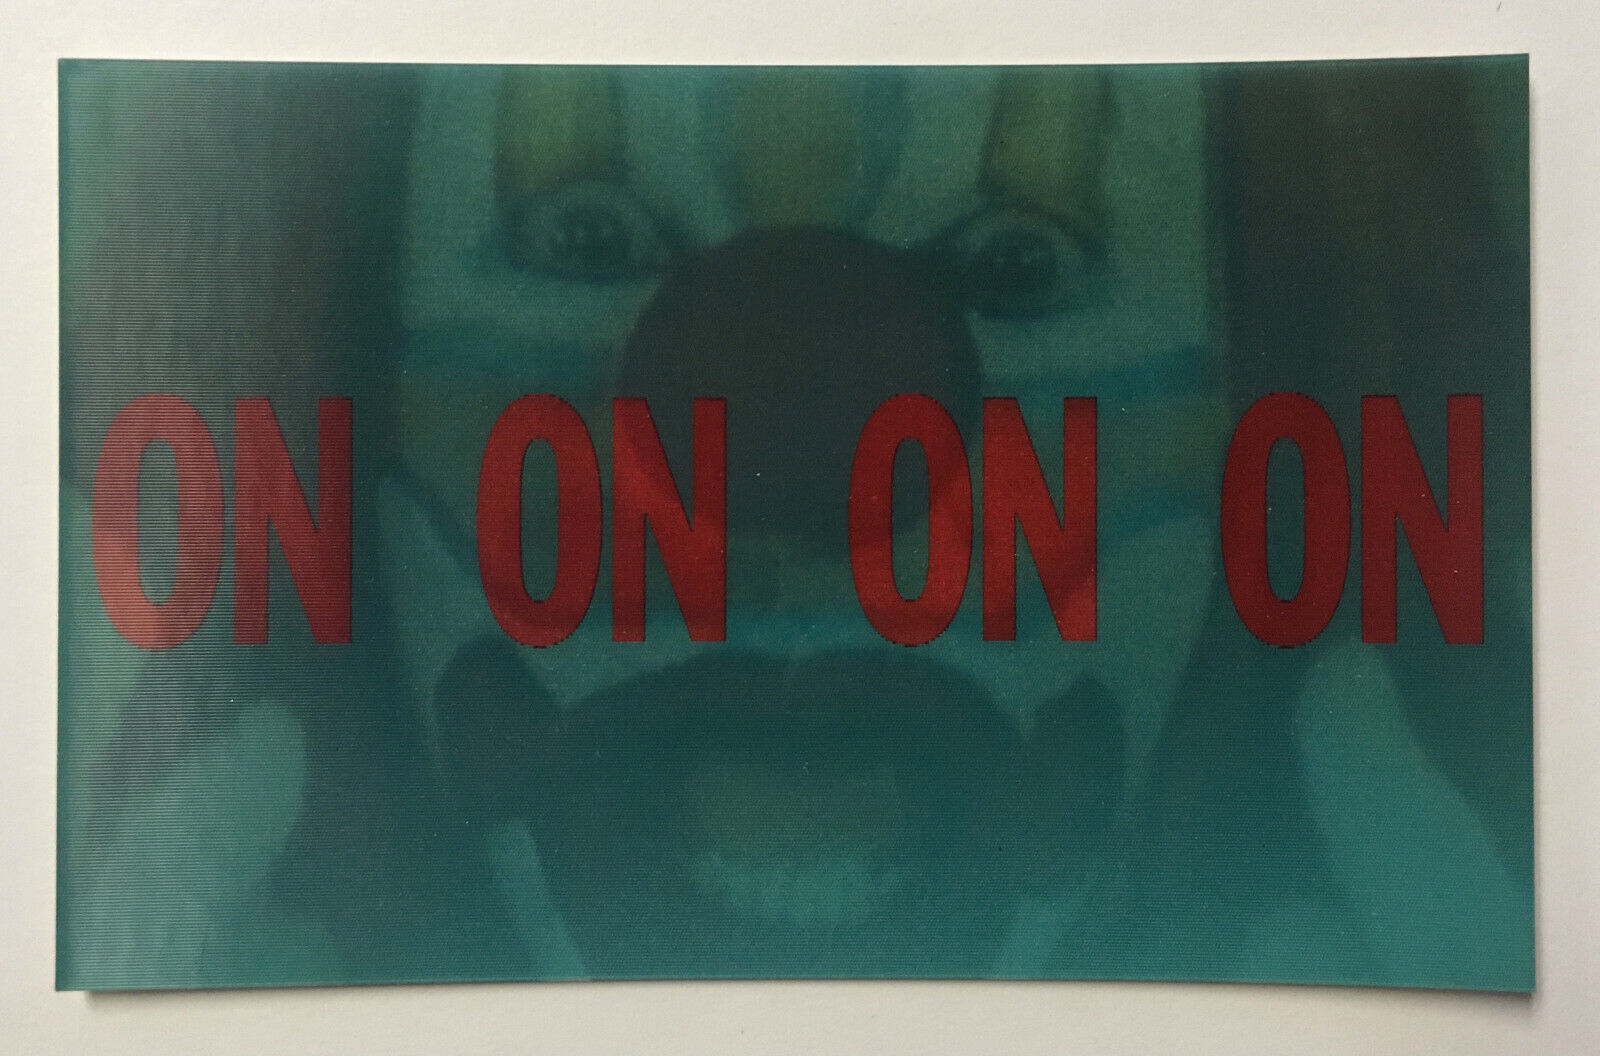 BRUCE NAUMAN Clown Torture (1995) - rare lenticular postcard designed for MOMA on eBay thumbnail